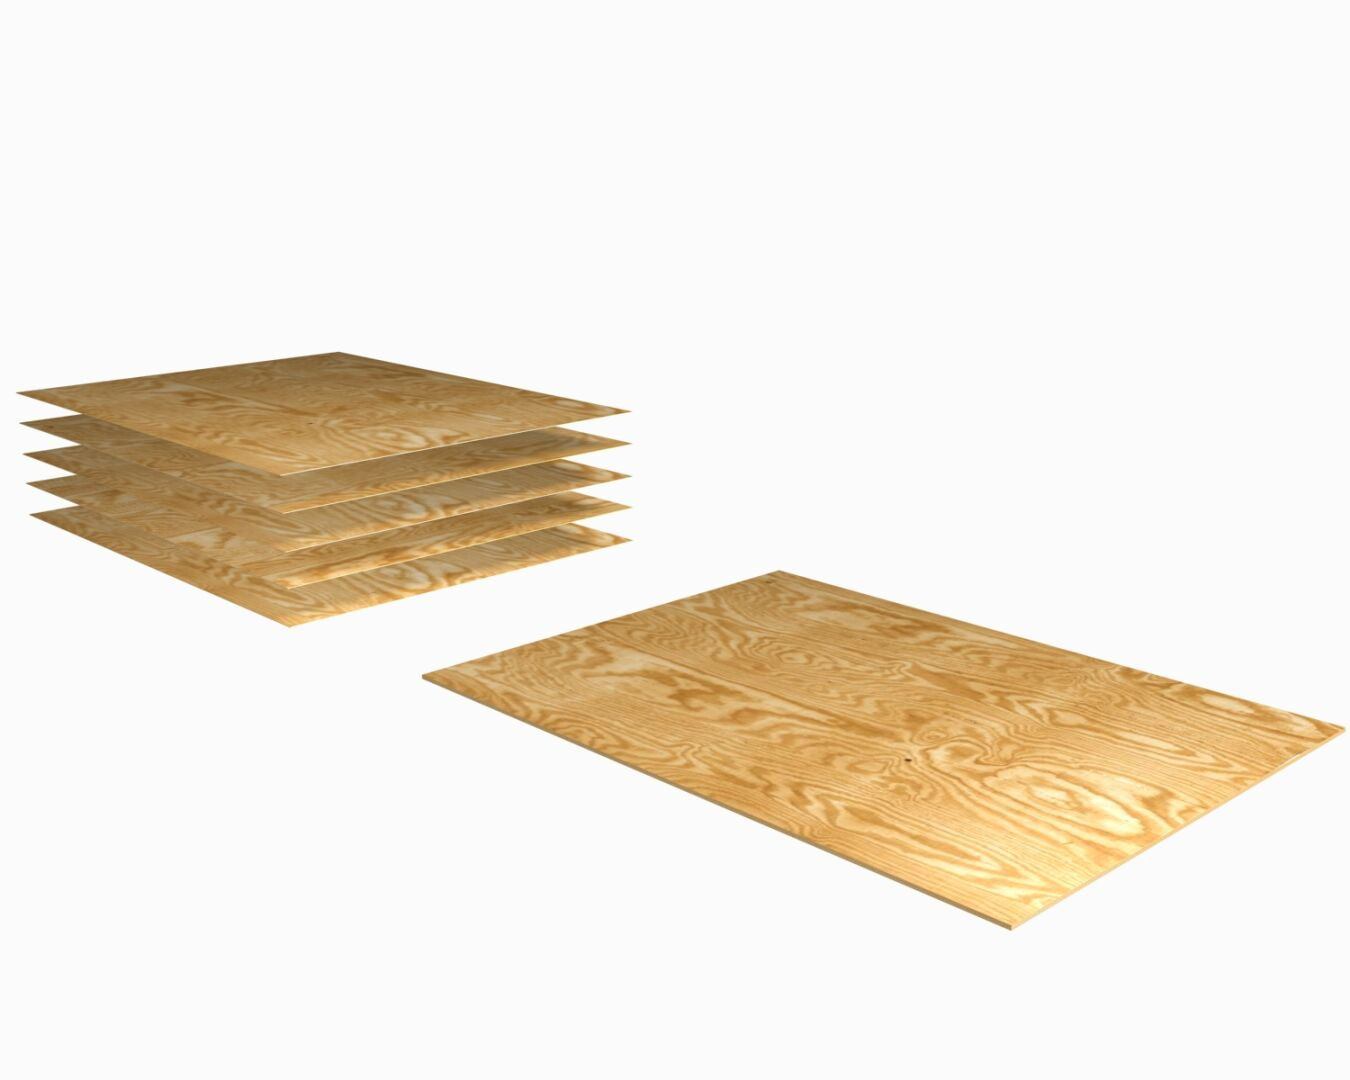 Plywood is a product which is formed by gluing wood veneer sheets together.